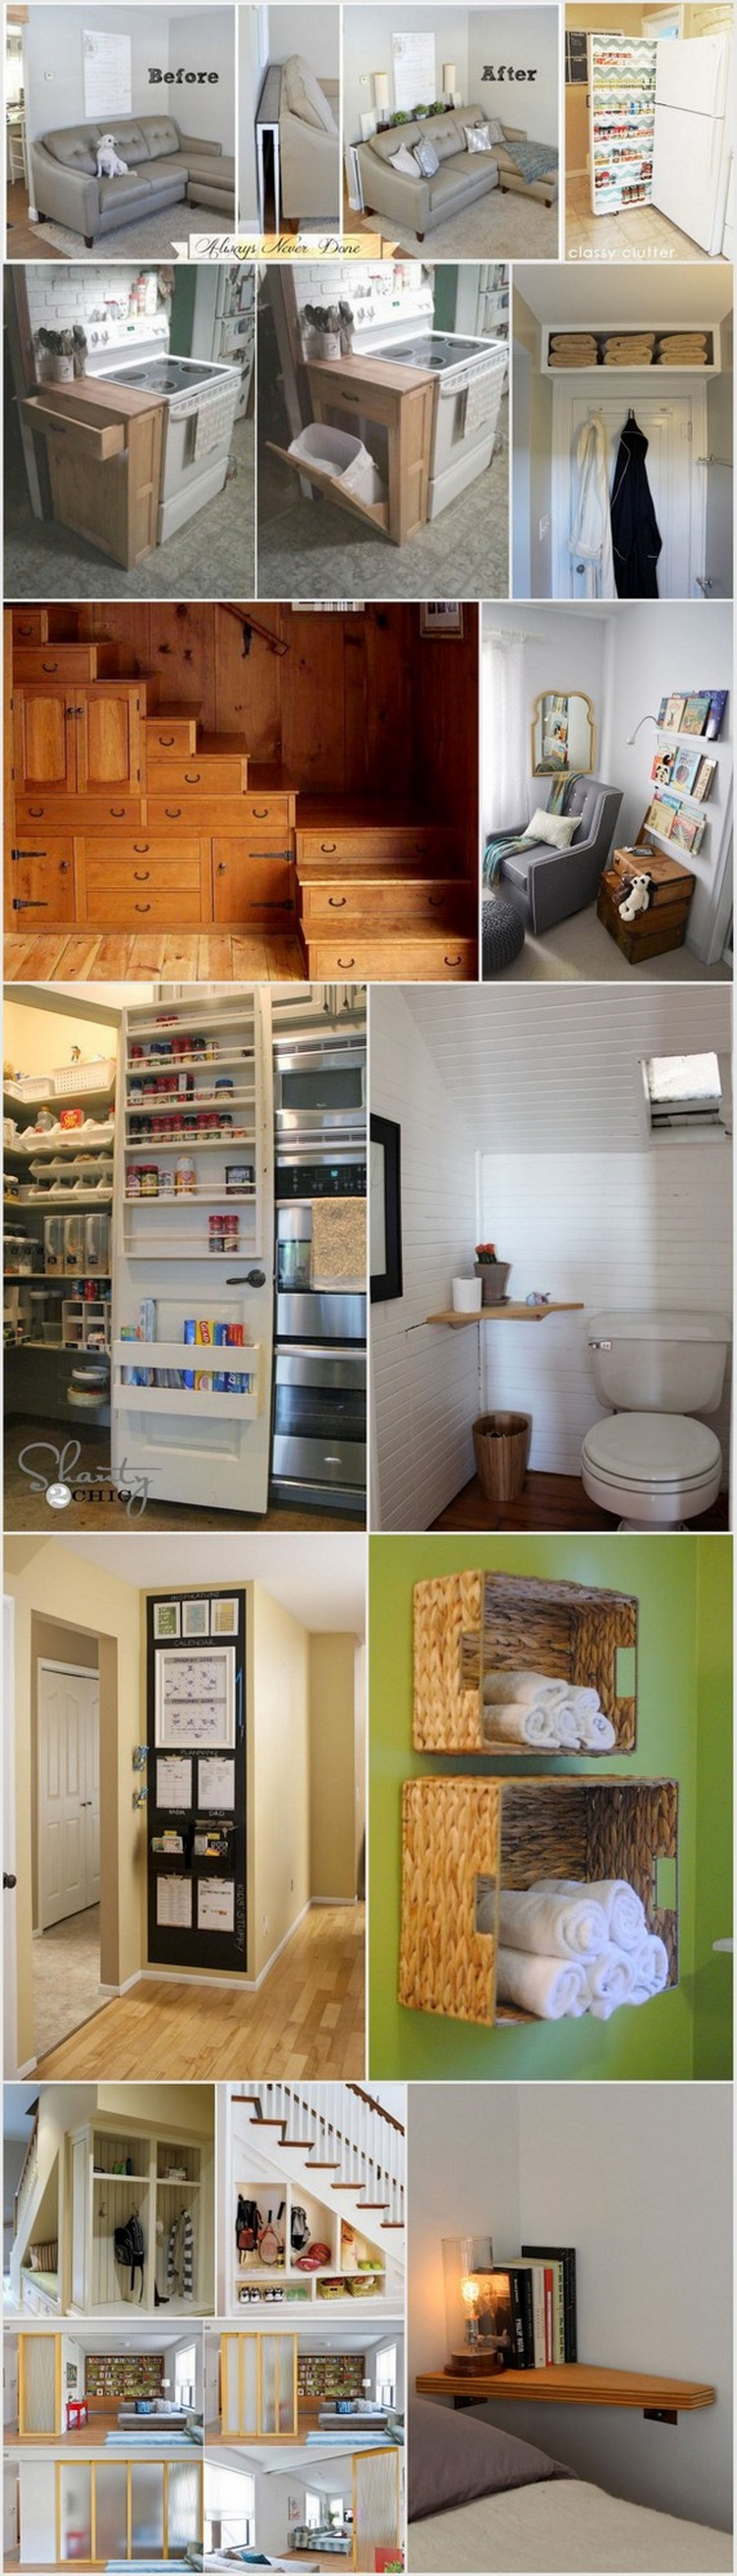 Ingenious DIY Project Ideas For Small Spaces